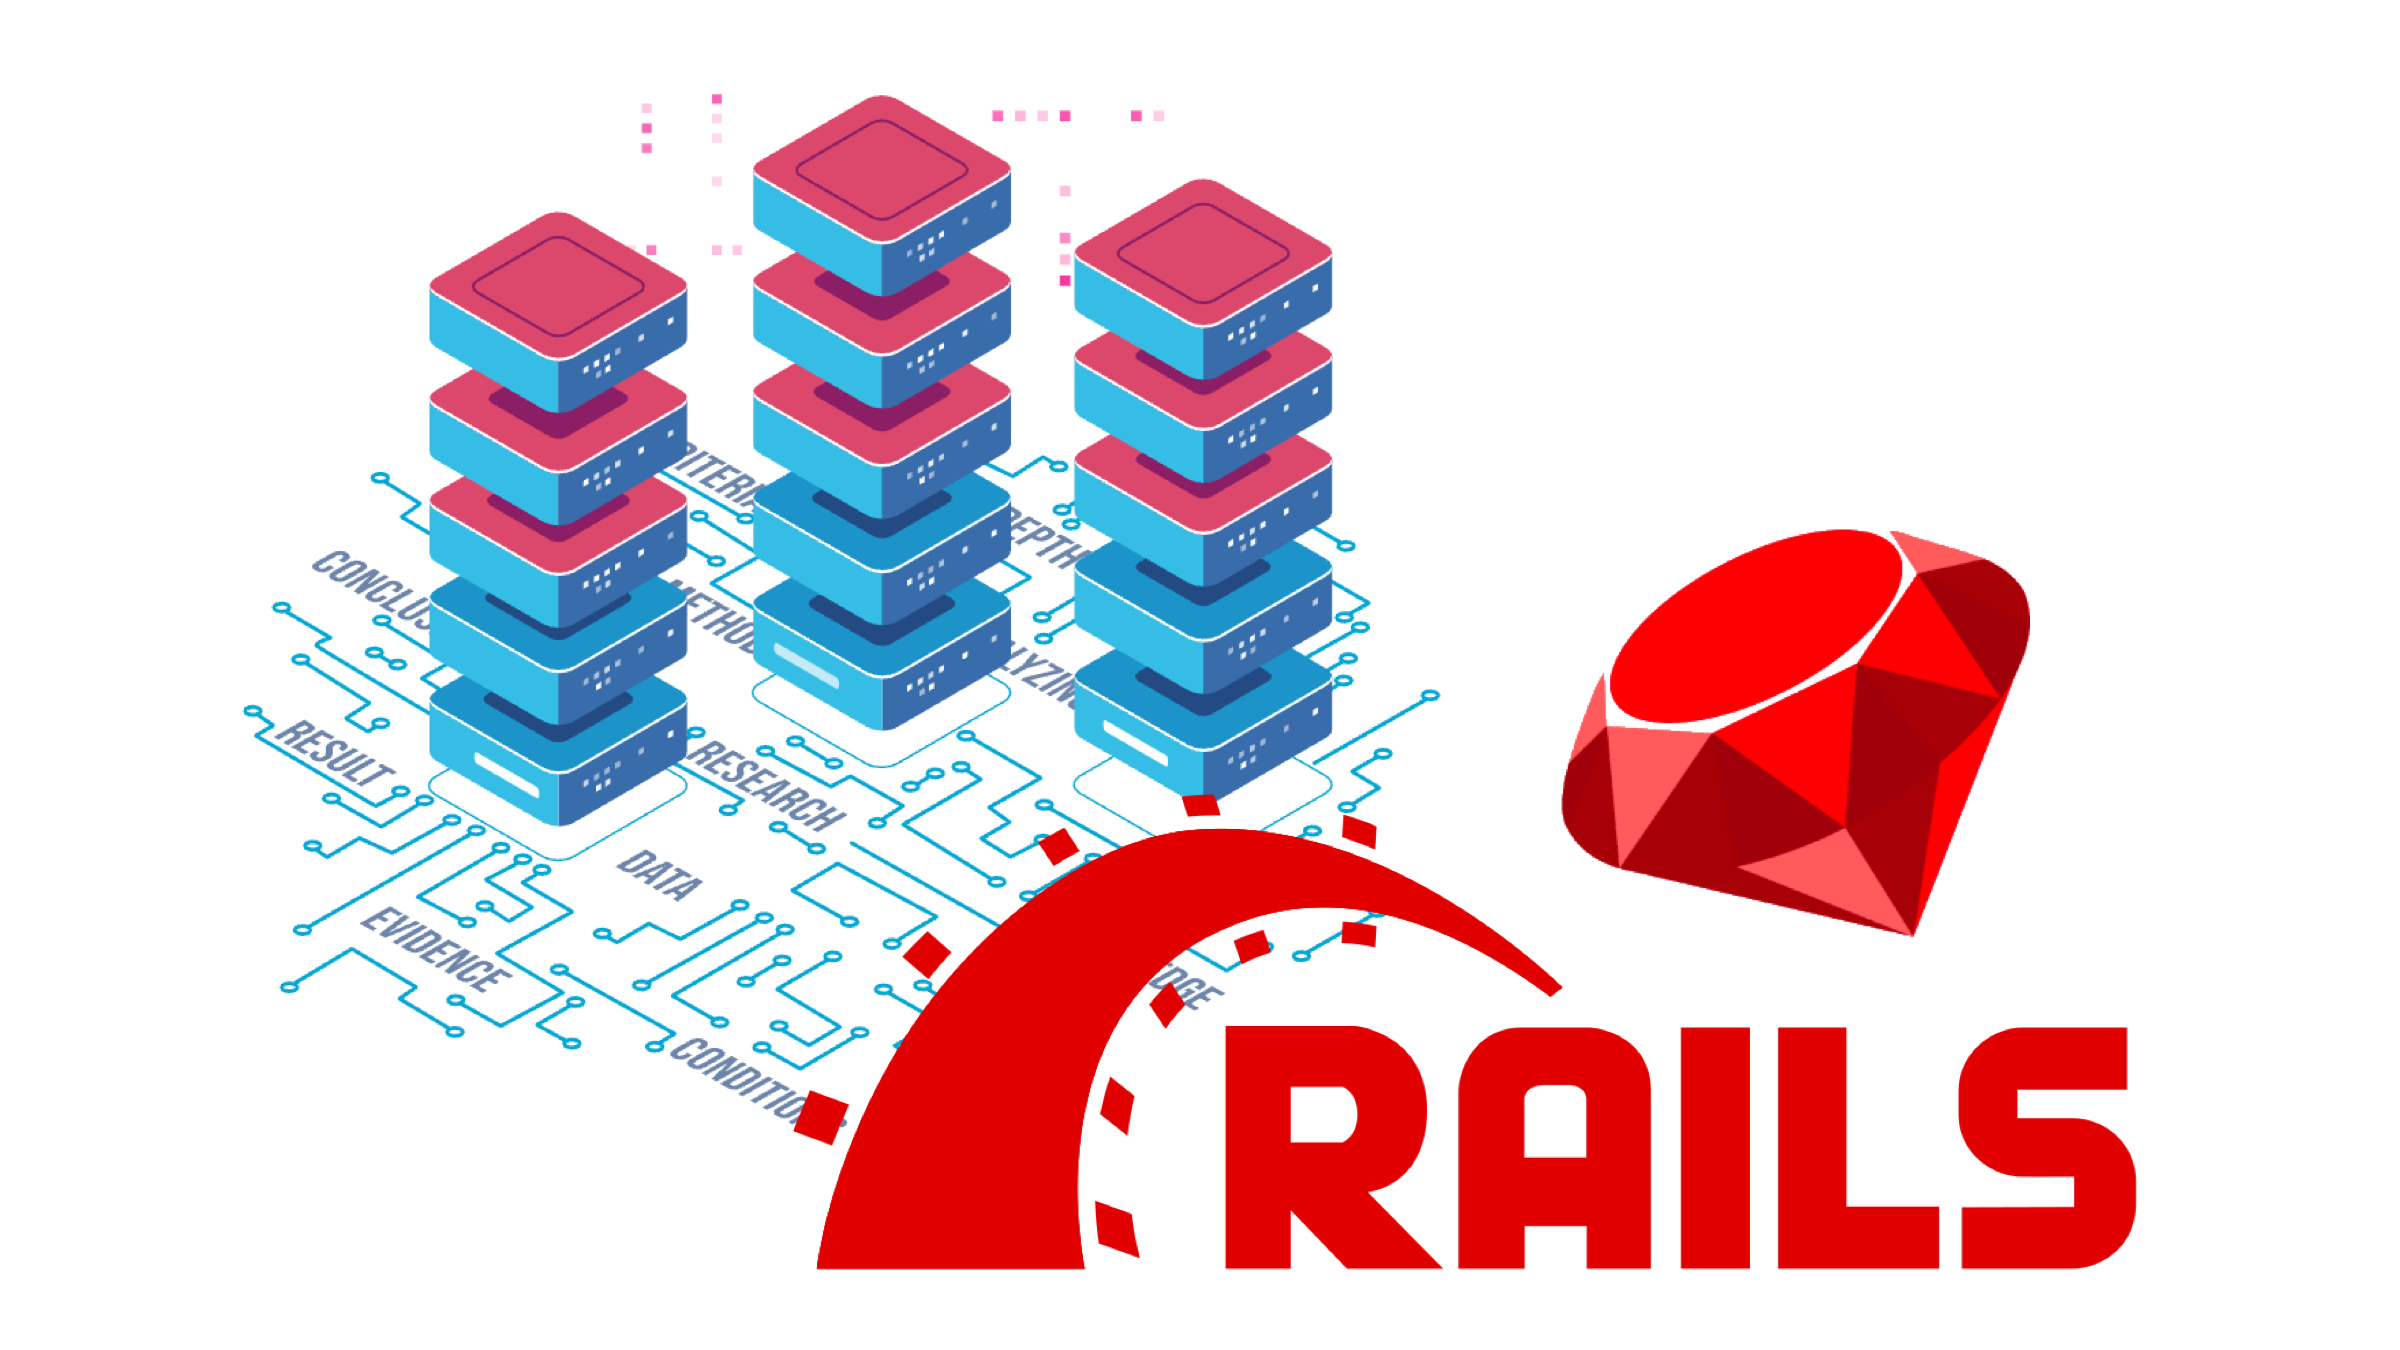 images/how-to-build-an-api-with-ruby-on-rails.jpg